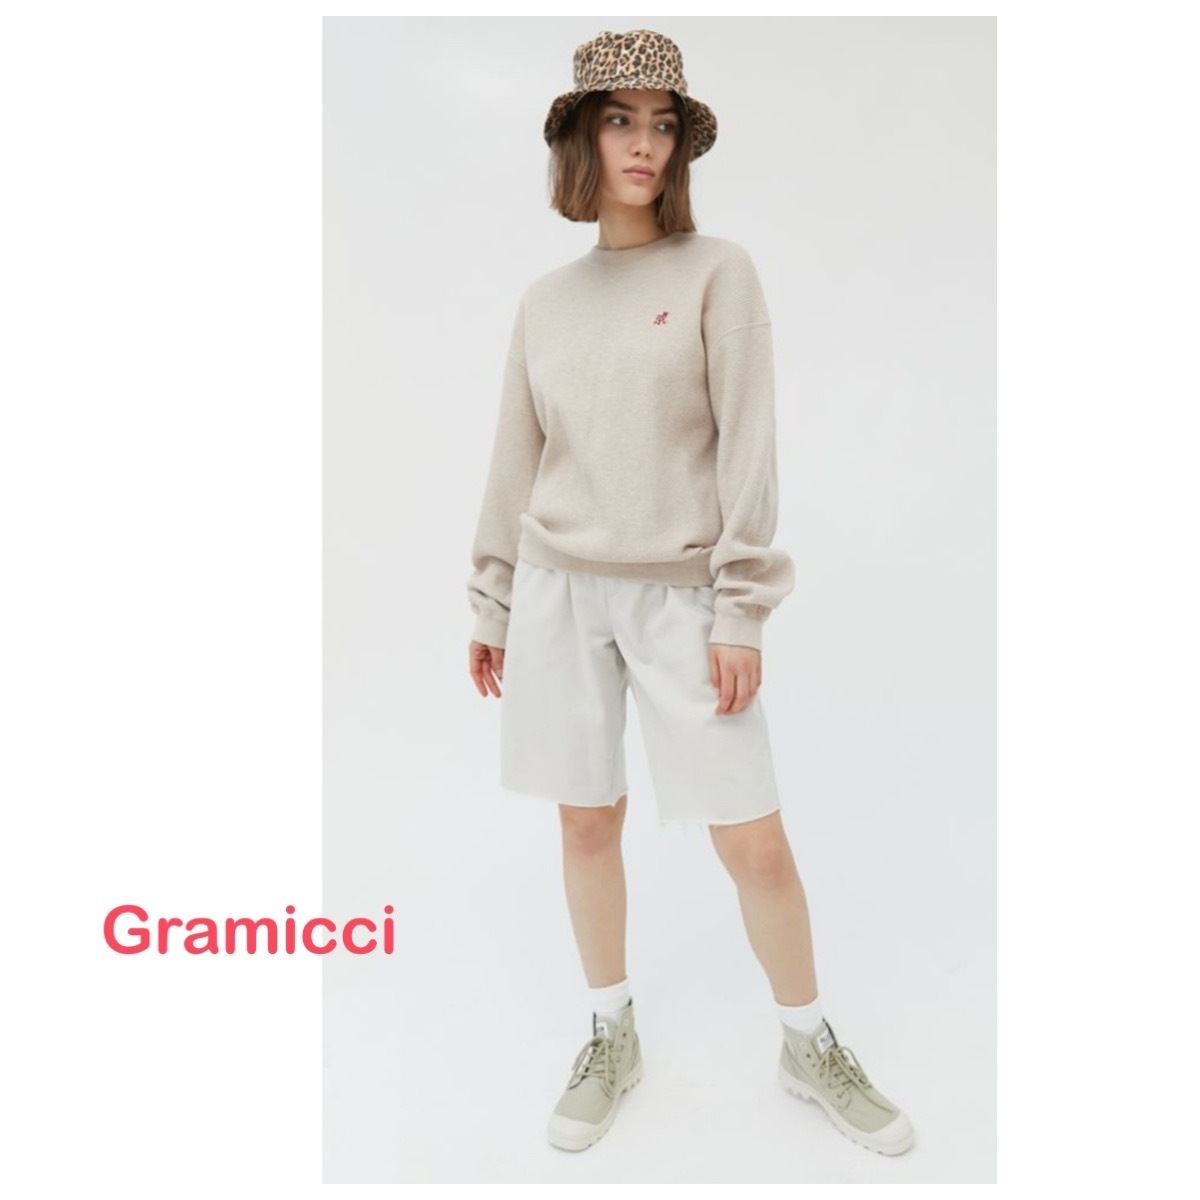 shop gramicci clothing